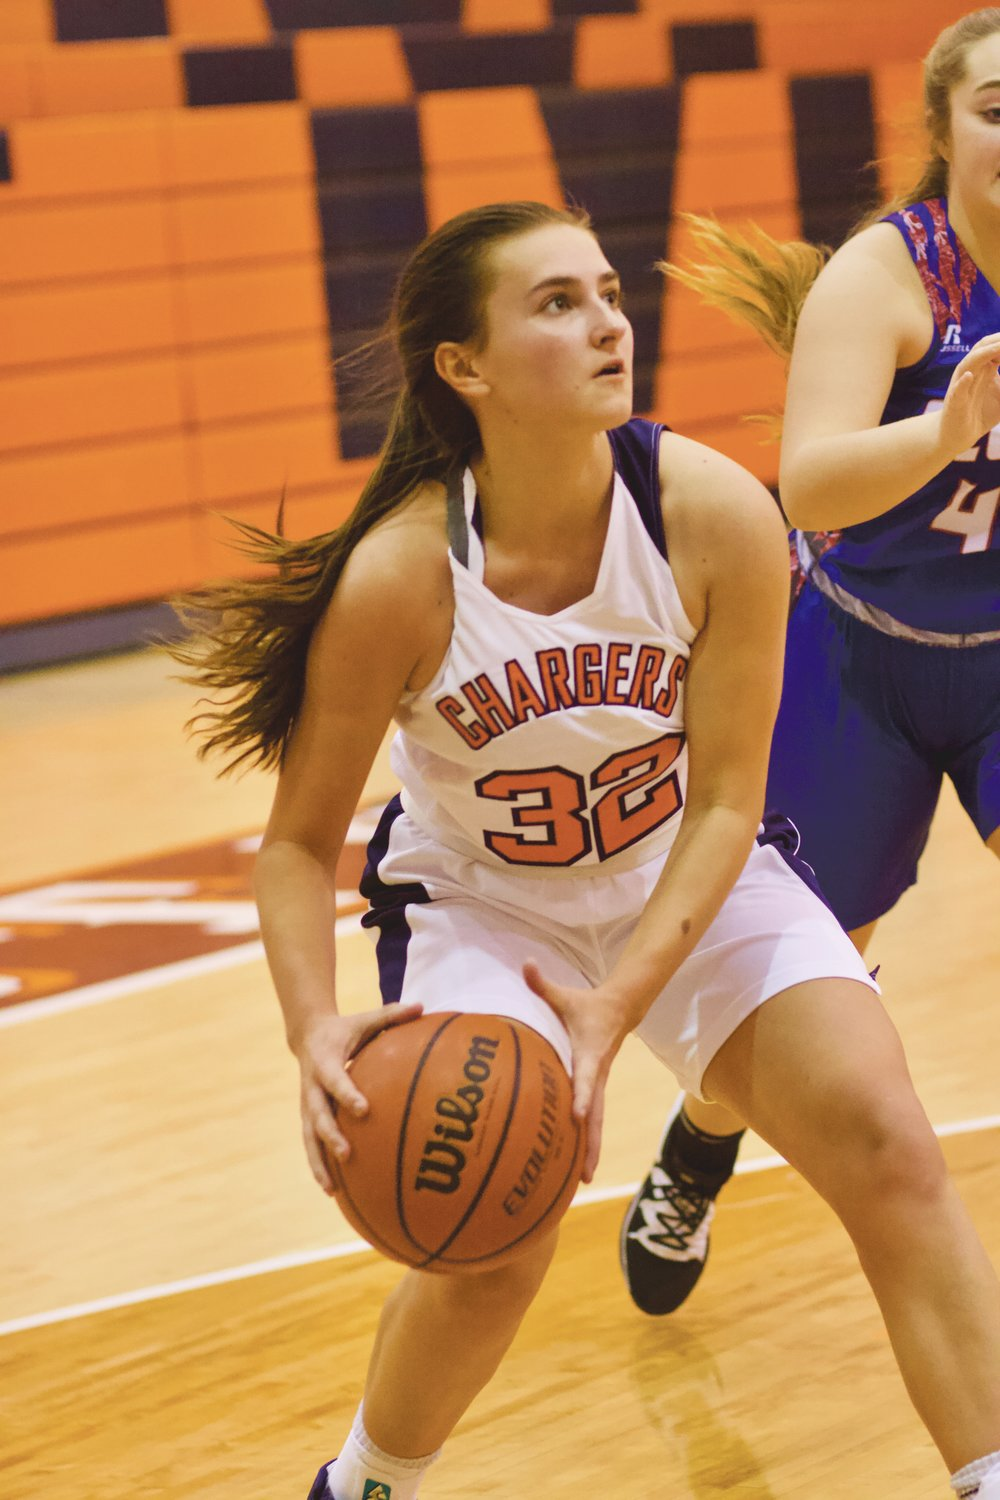 North Montgomery senior Emily Sennett scored 12 points in the Chargers 54-28 win over Elwood on Tuesday.